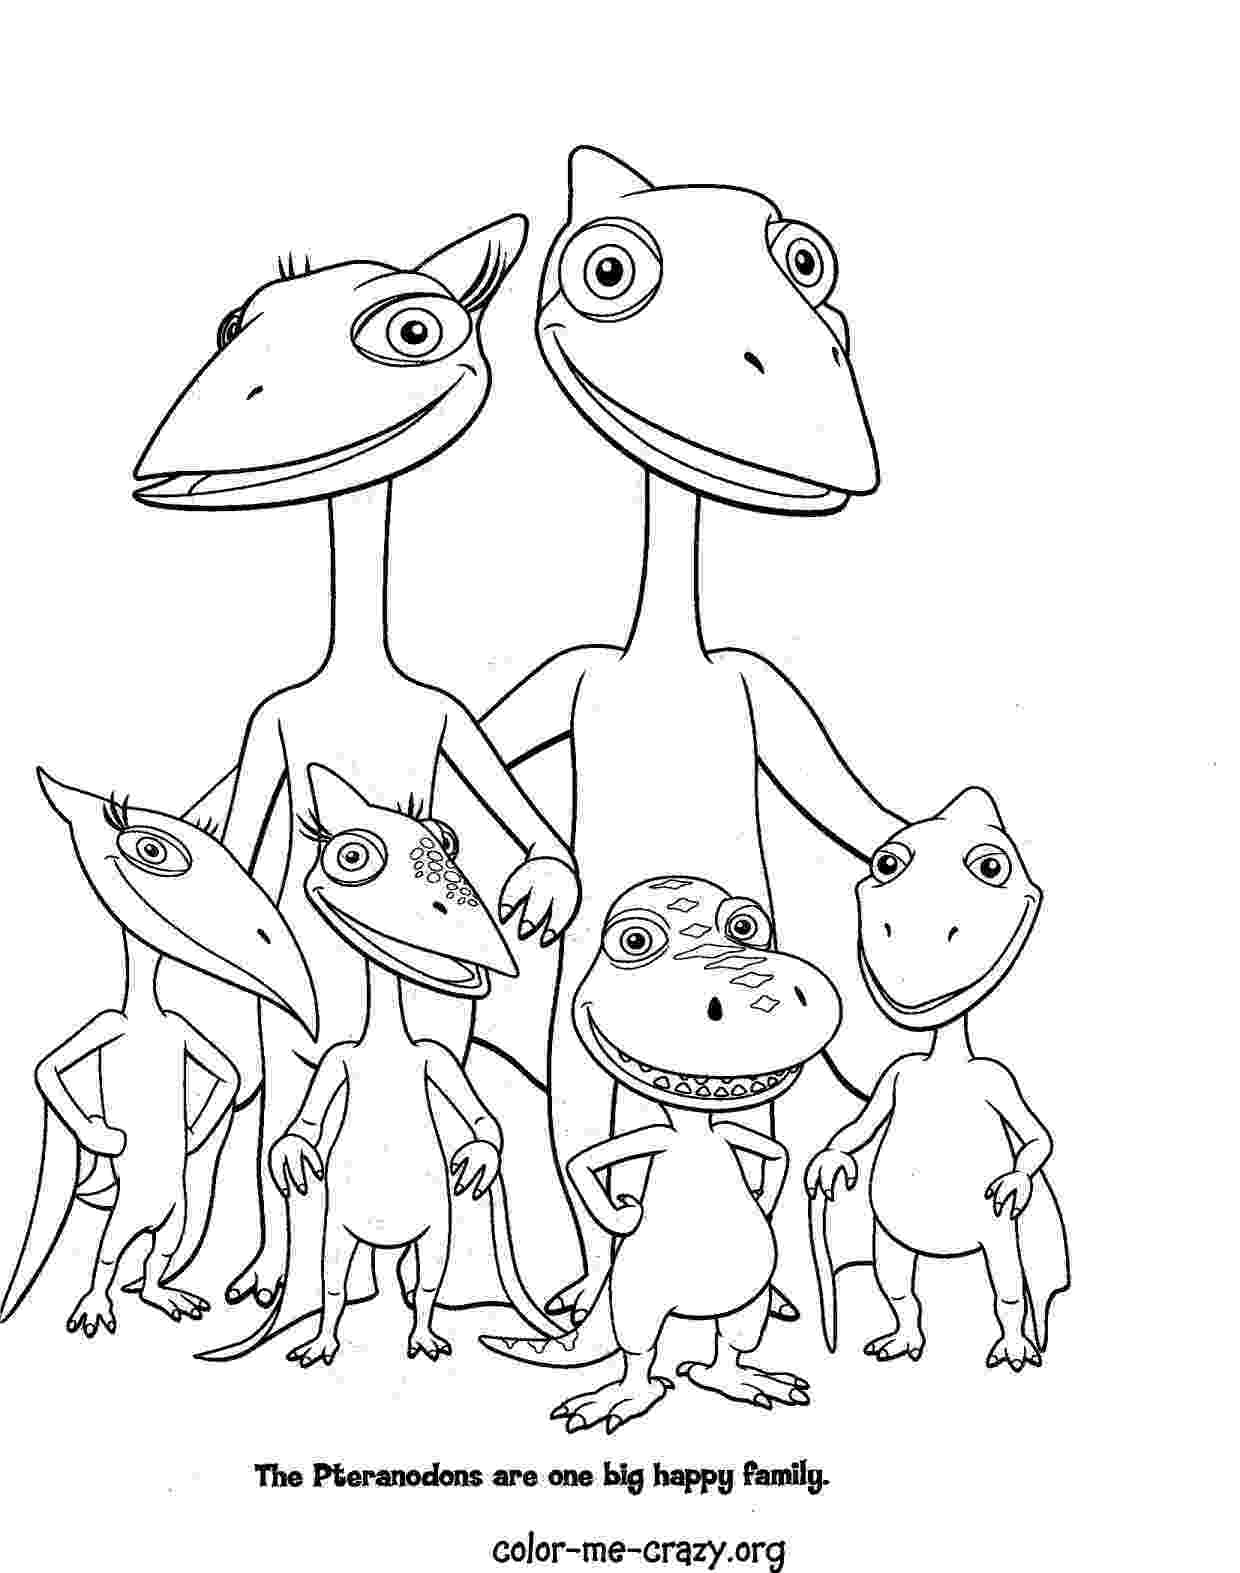 dinosaur colouring page free printable dinosaur coloring pages for kids colouring dinosaur page